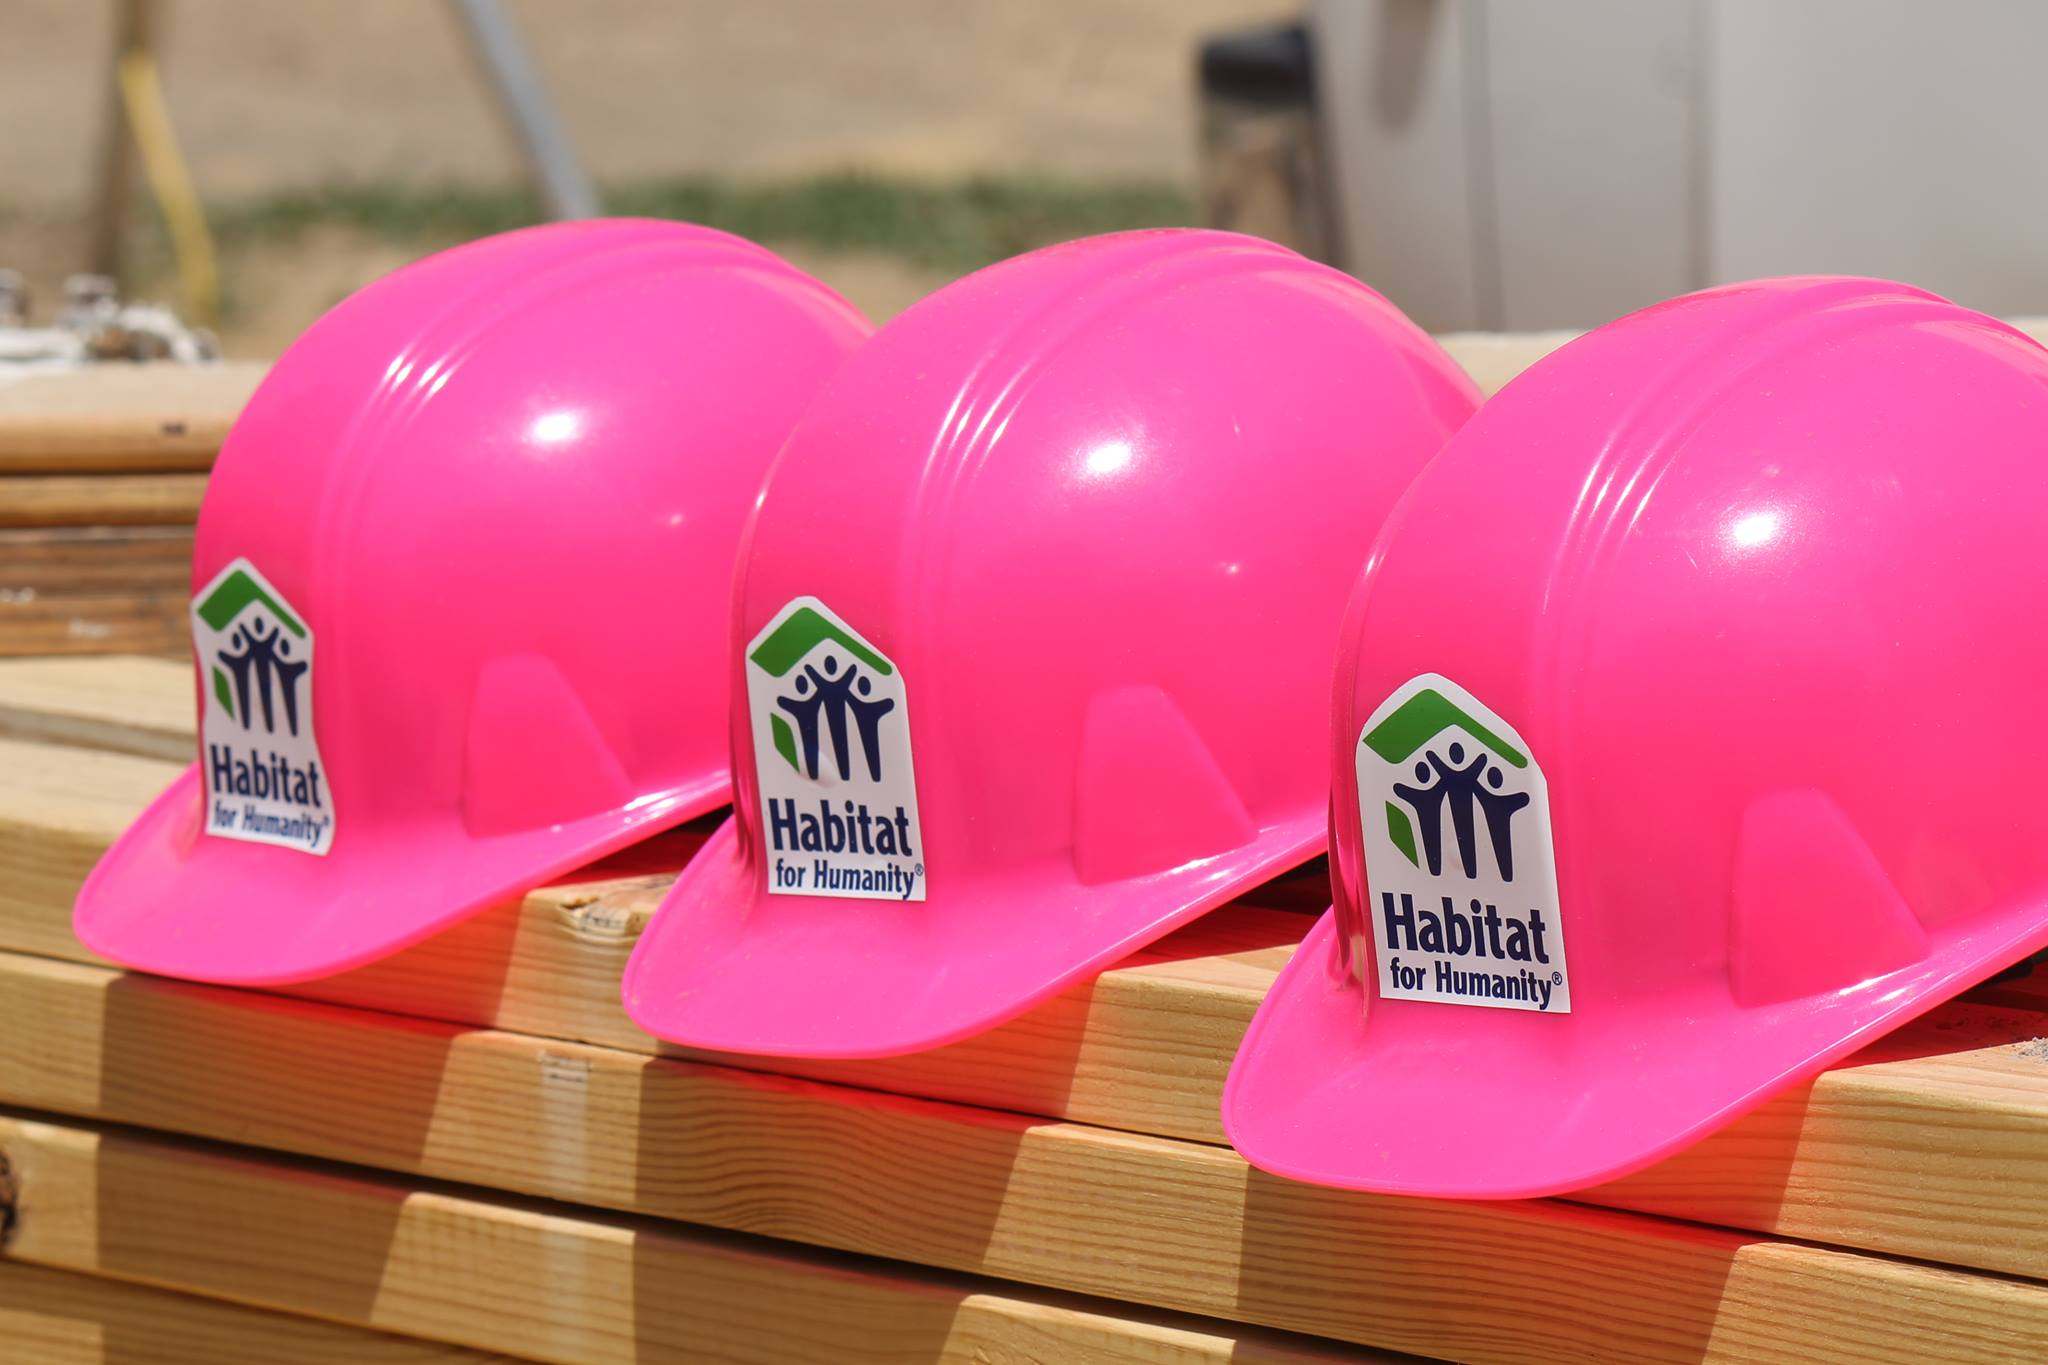 Habitat for Humanity - Habitat builds homes for people willing to work to help themselves, but who live in substandard or inadequate housing due to income challenges. Over 100 Habitat homes have been built in Jackson and St. James' volunteers have participated in the construction of seven Habitat houses.